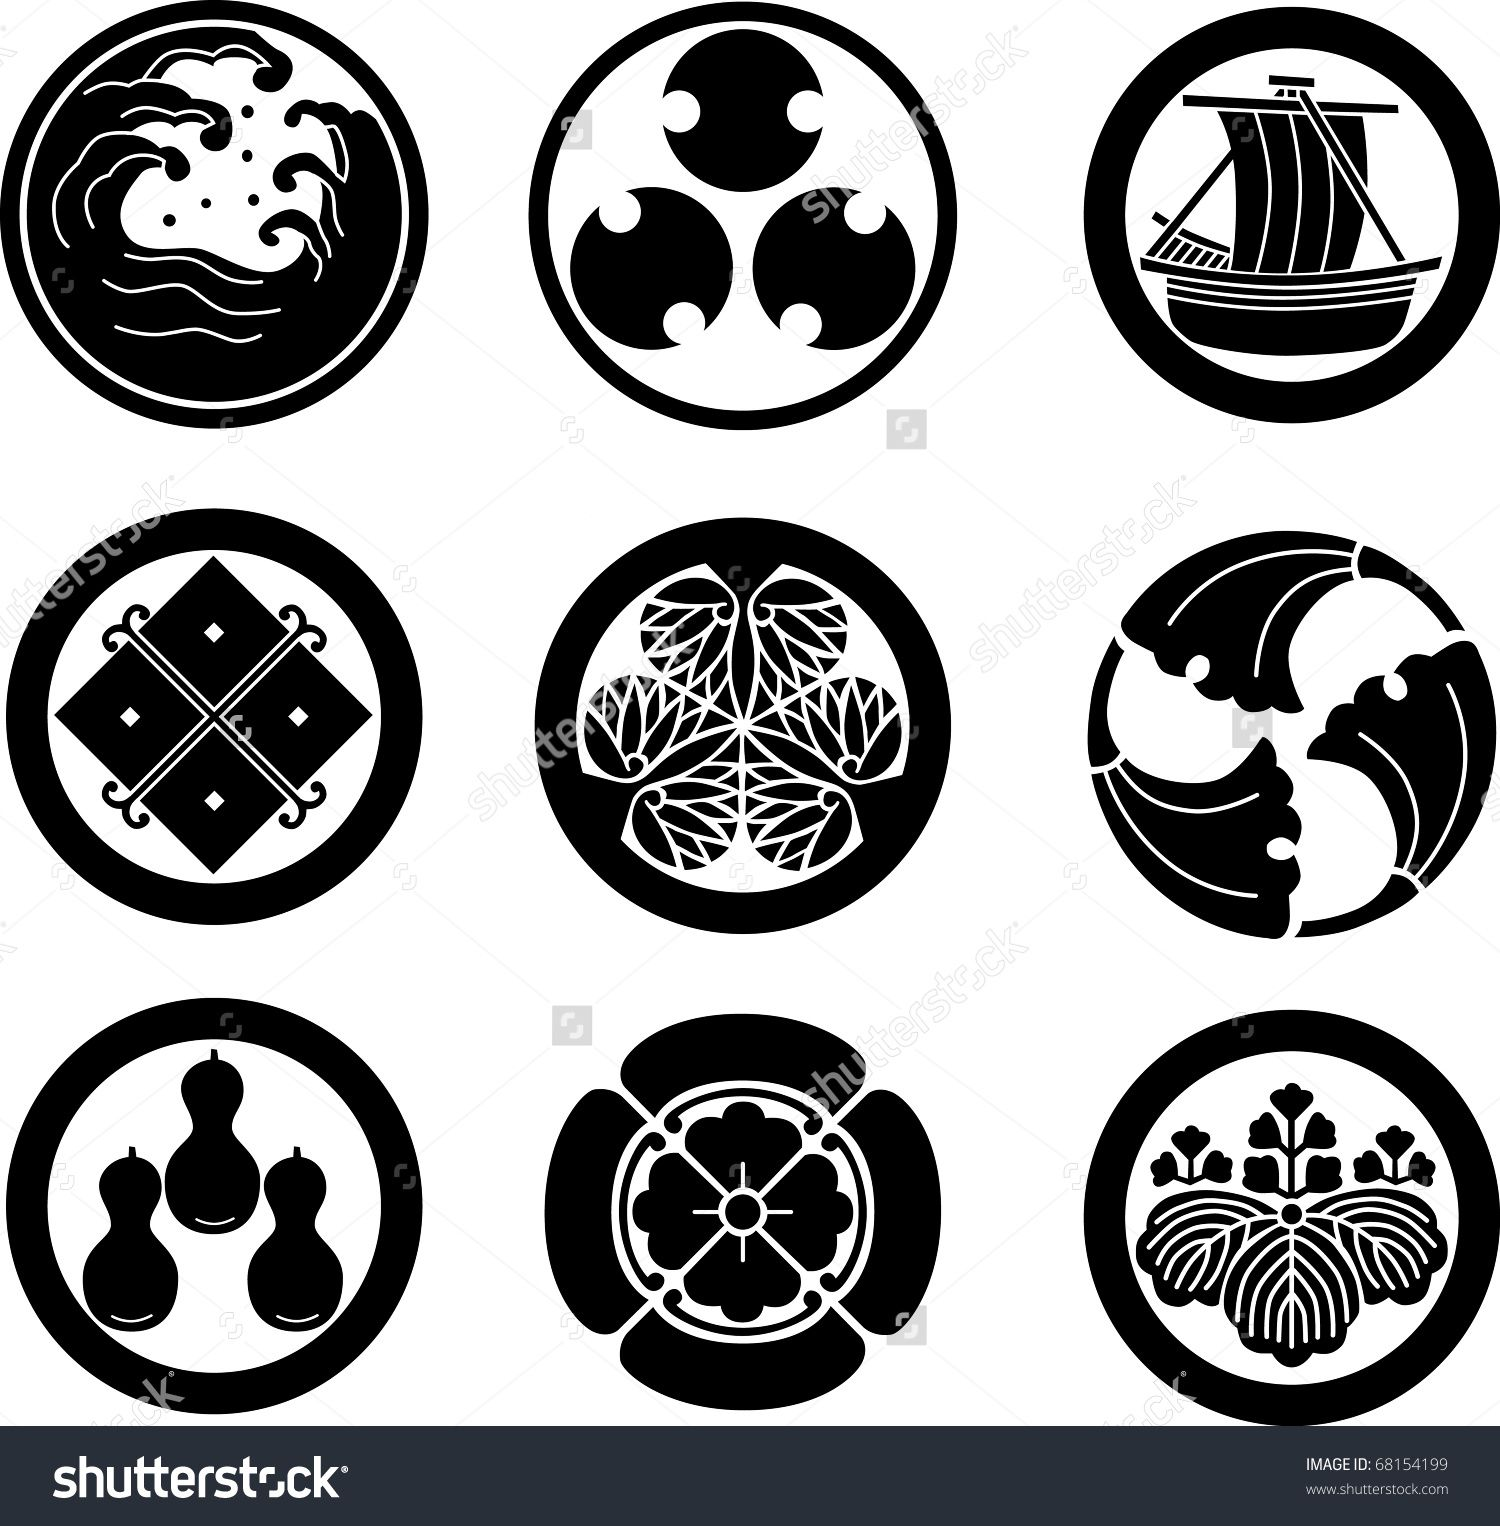 Stock vector japanese family crests vector 68154199g 15001526 stock vector japanese family crests vector 68154199g biocorpaavc Gallery